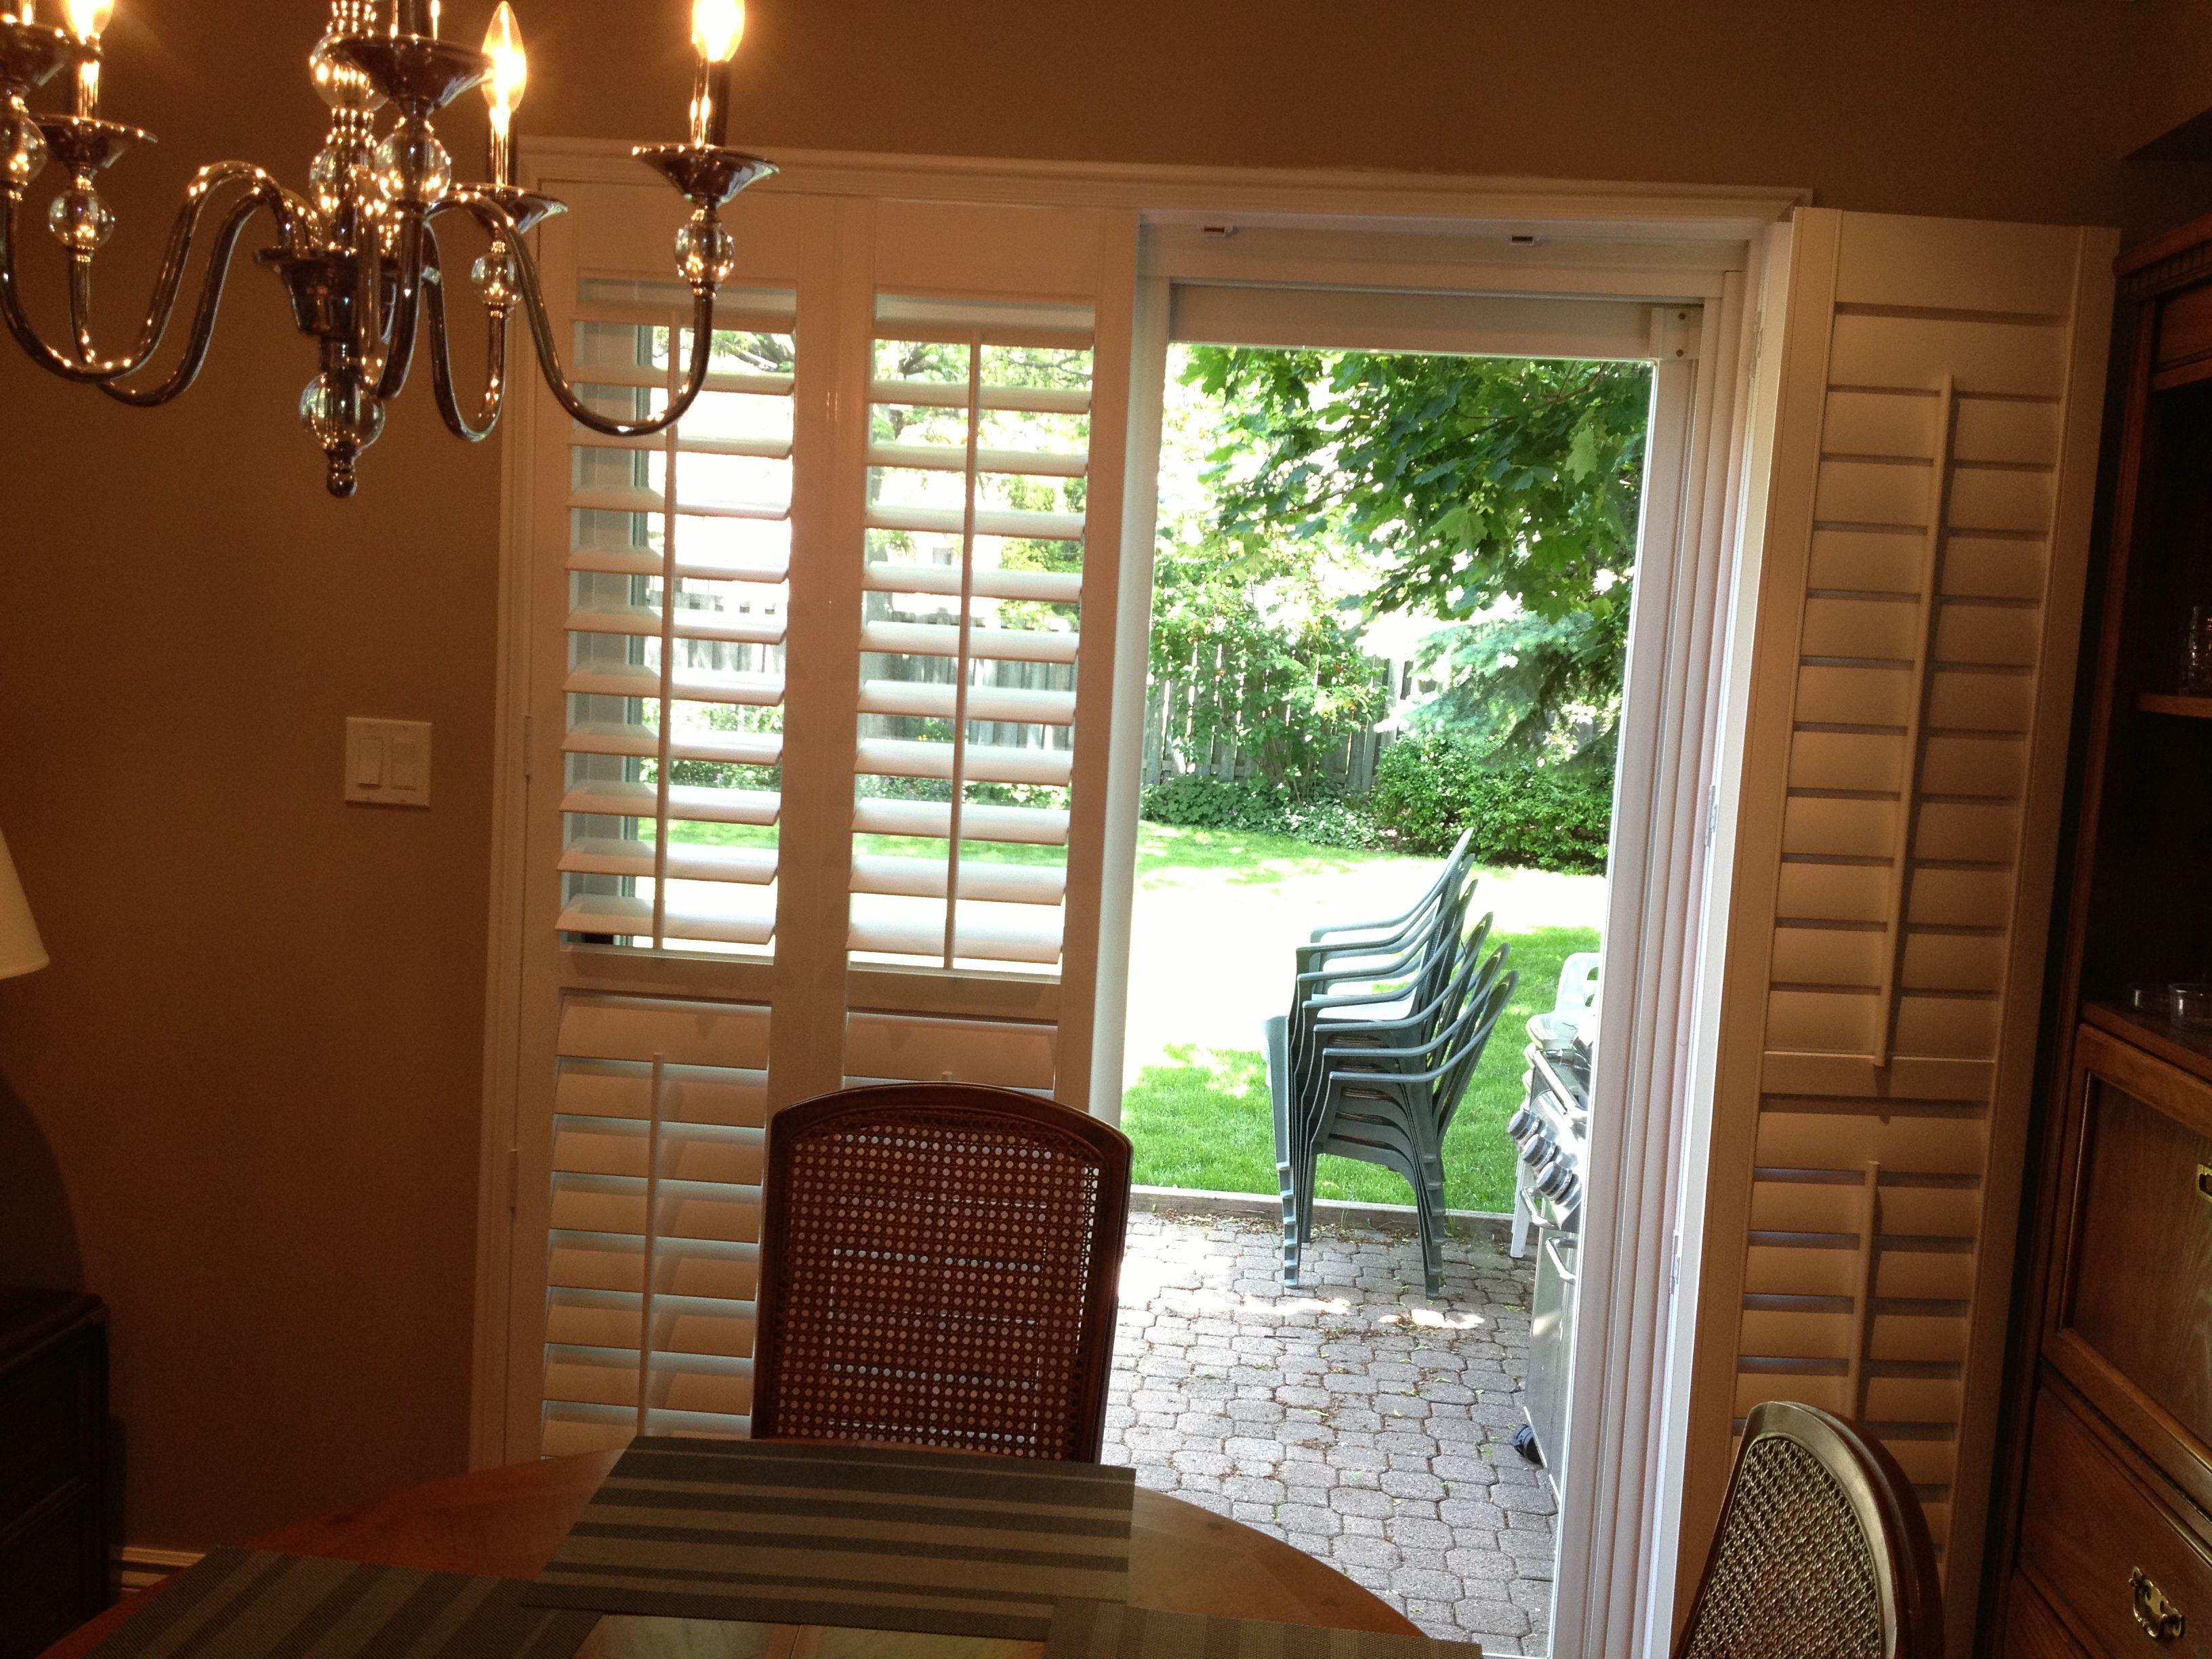 Bifold Shutters Popular For Patio Doors Because They Fold Back Off